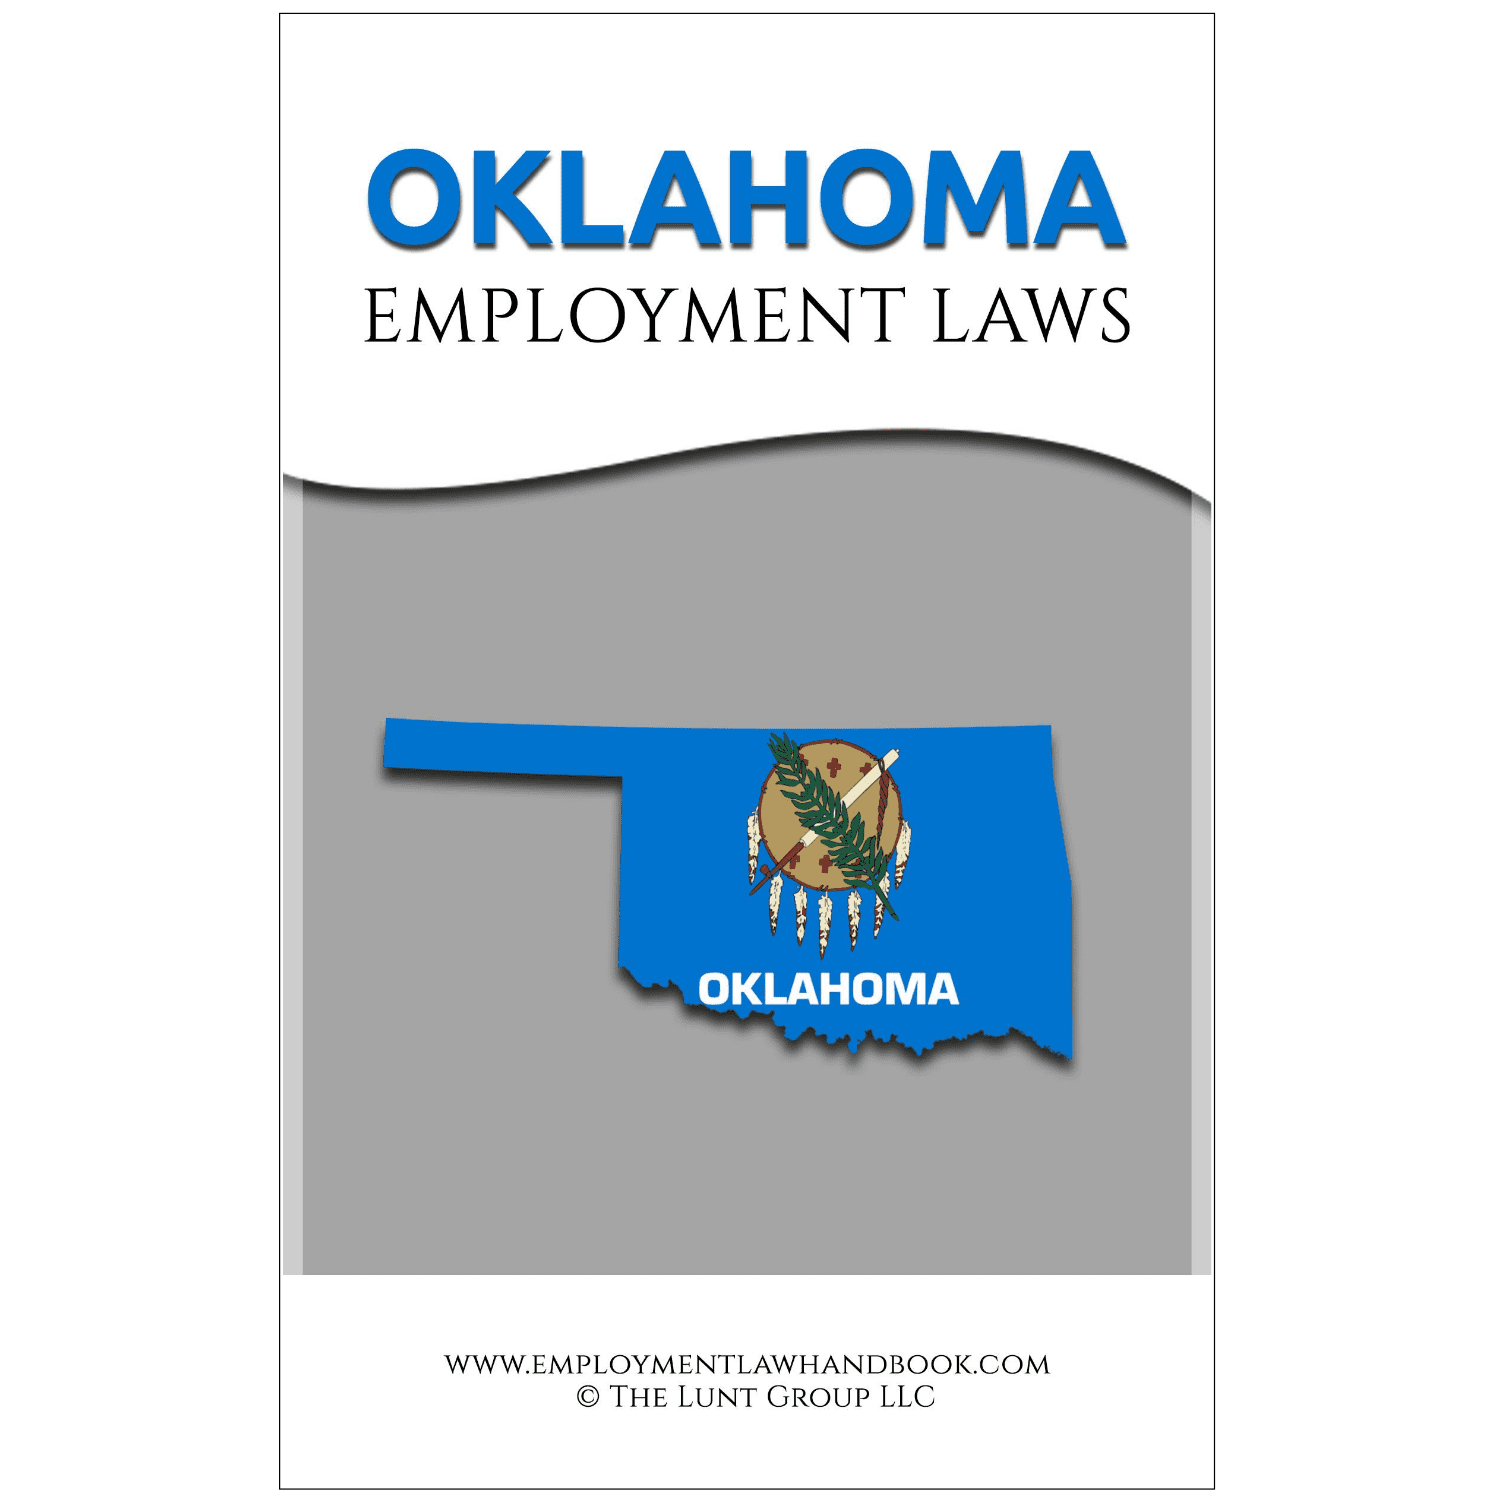 employment laws Employment law guide: laws, regulations, and technical assistance services prepared by the office of the assistant secretary for policy this guide describes the major statutes and regulations administered by the us department of labor (dol) that affect businesses and workers the guide is designed mainly for those needing hands-on.